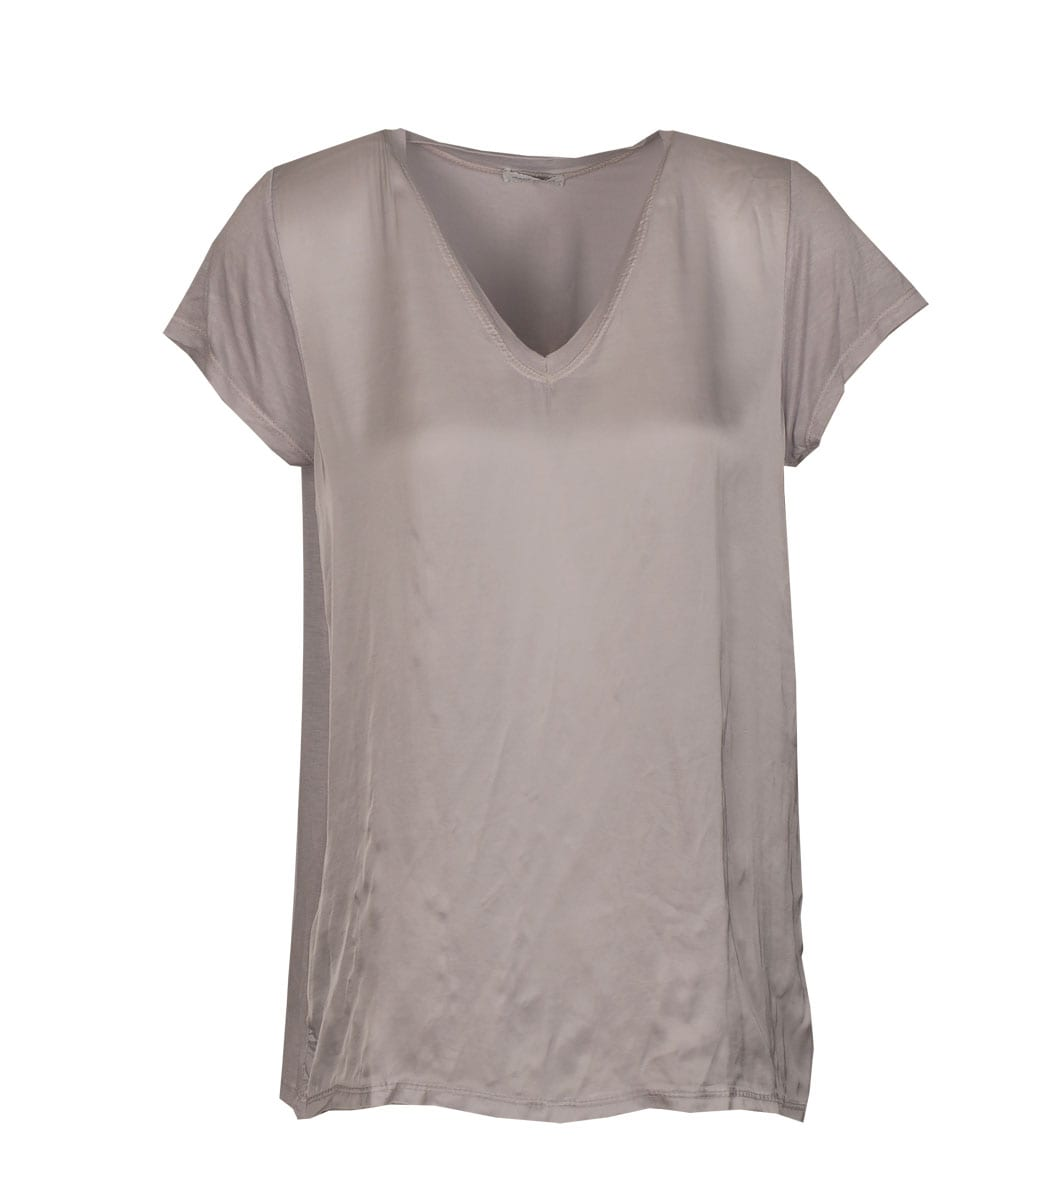 Satin front short sleeve v-neck top